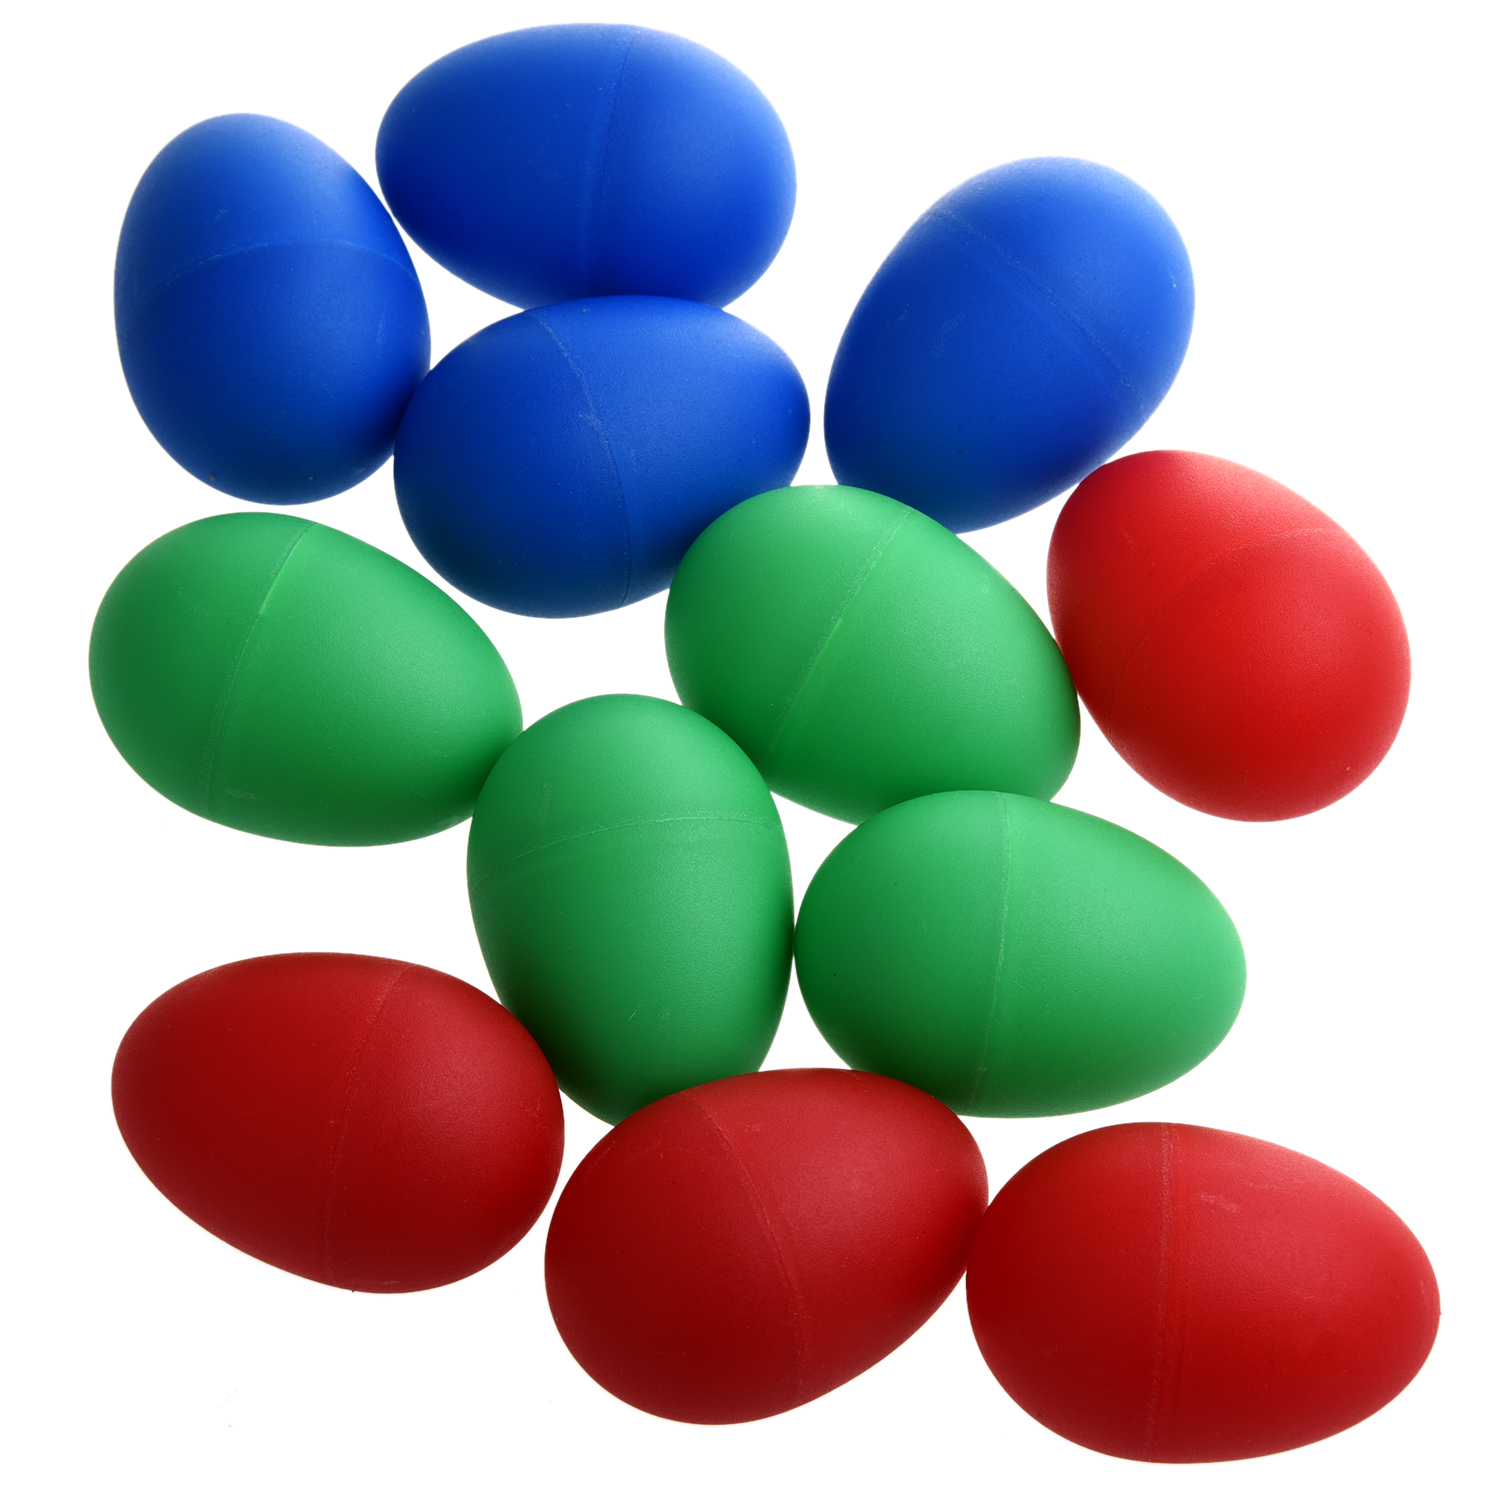 12 X Educational Plastic Drums Musical Egg Maracas Shakers Drop Shipping